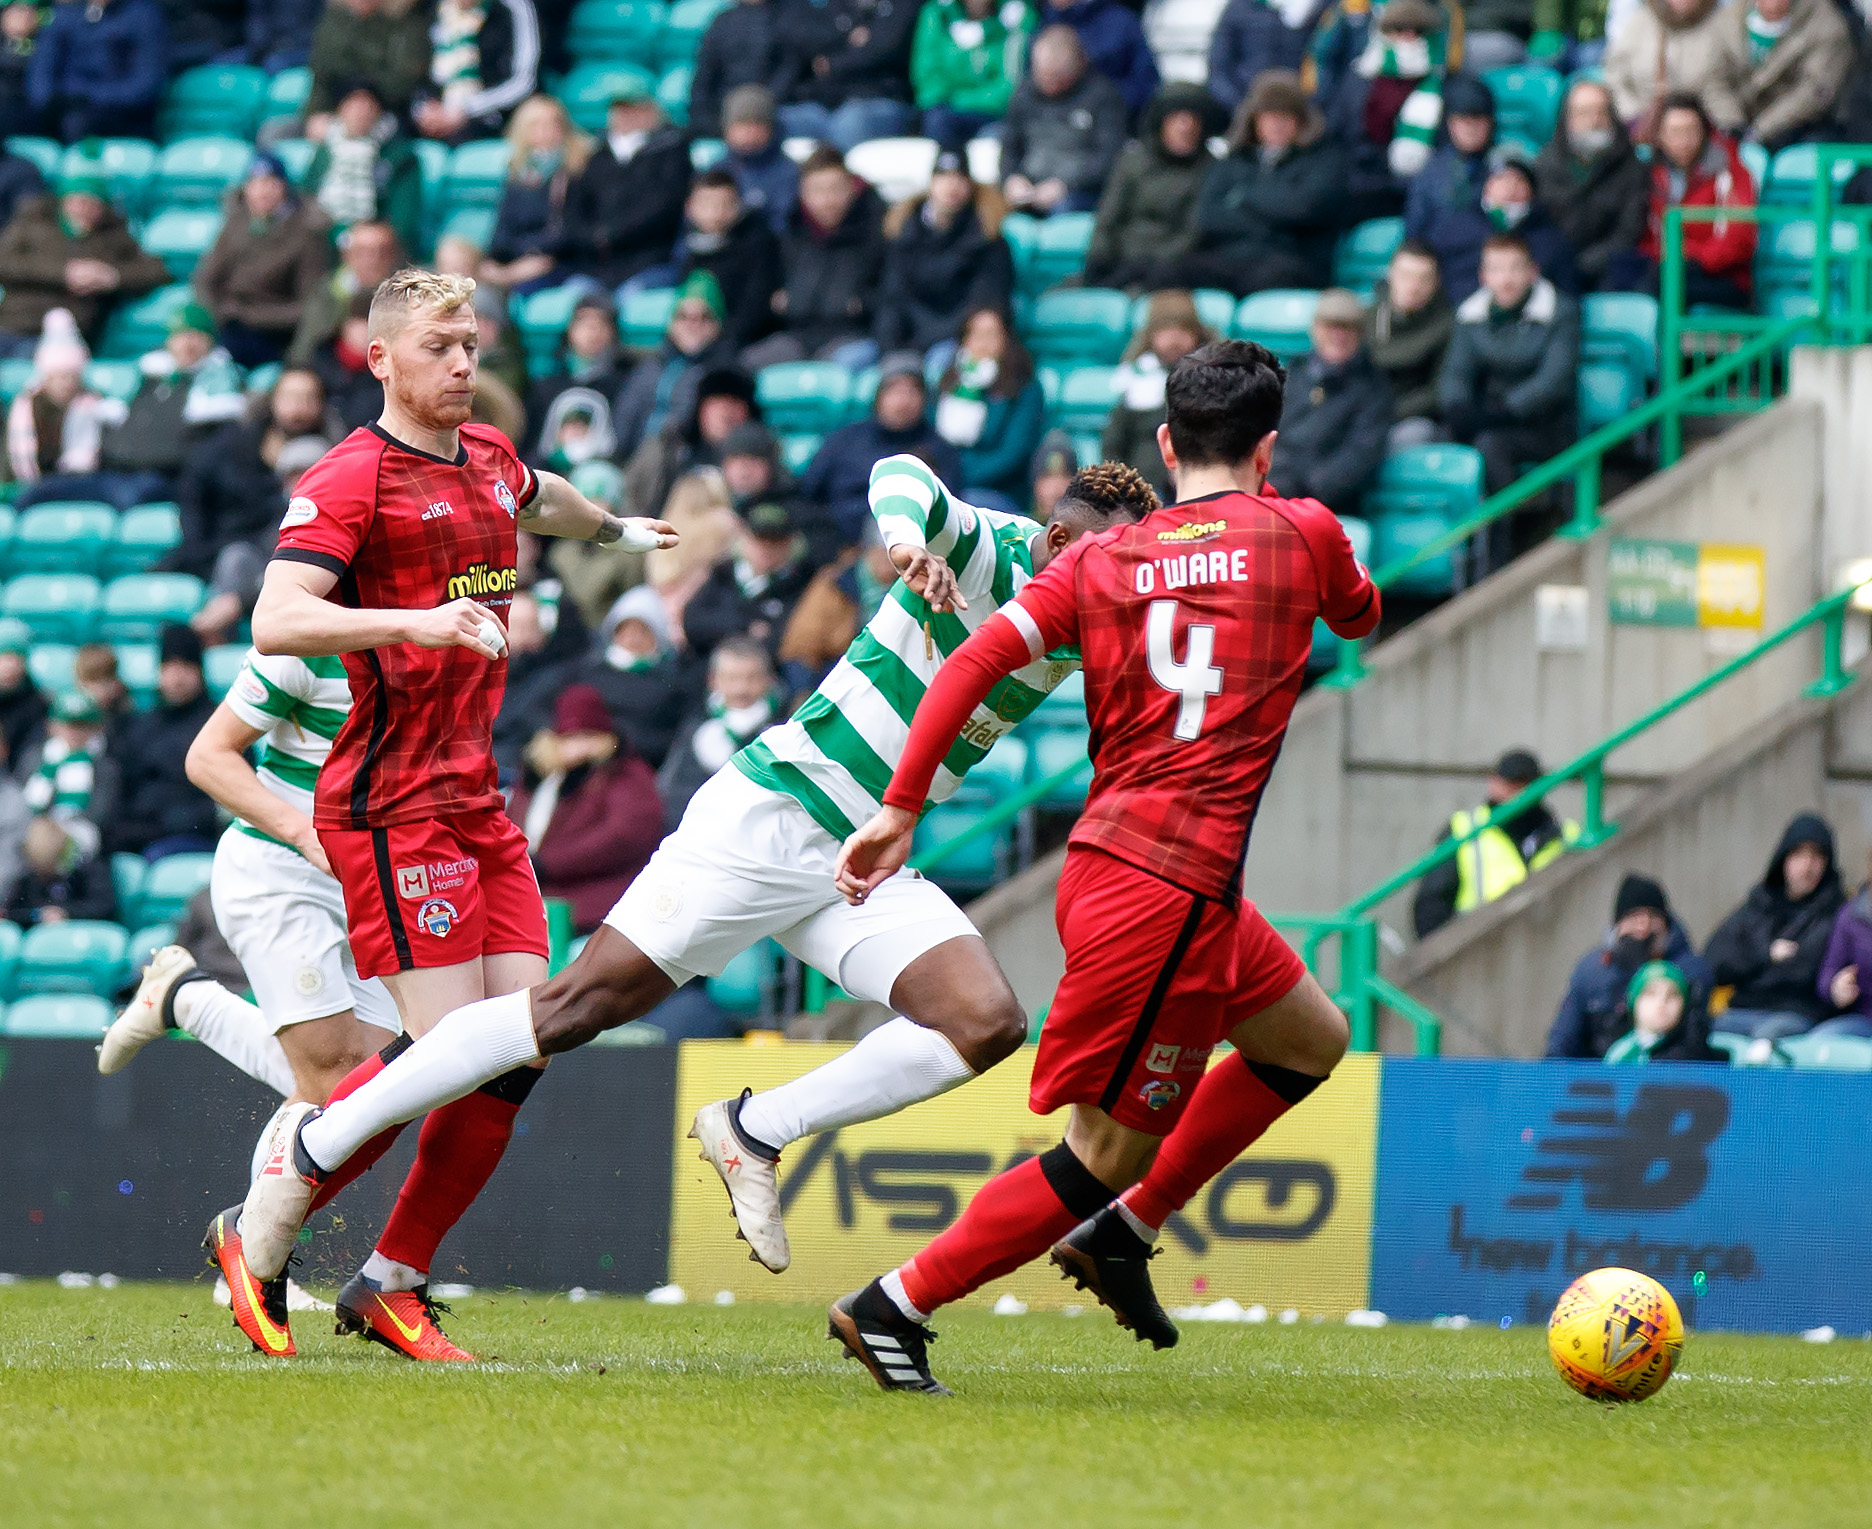 Morton defender dismayed at penalty decision